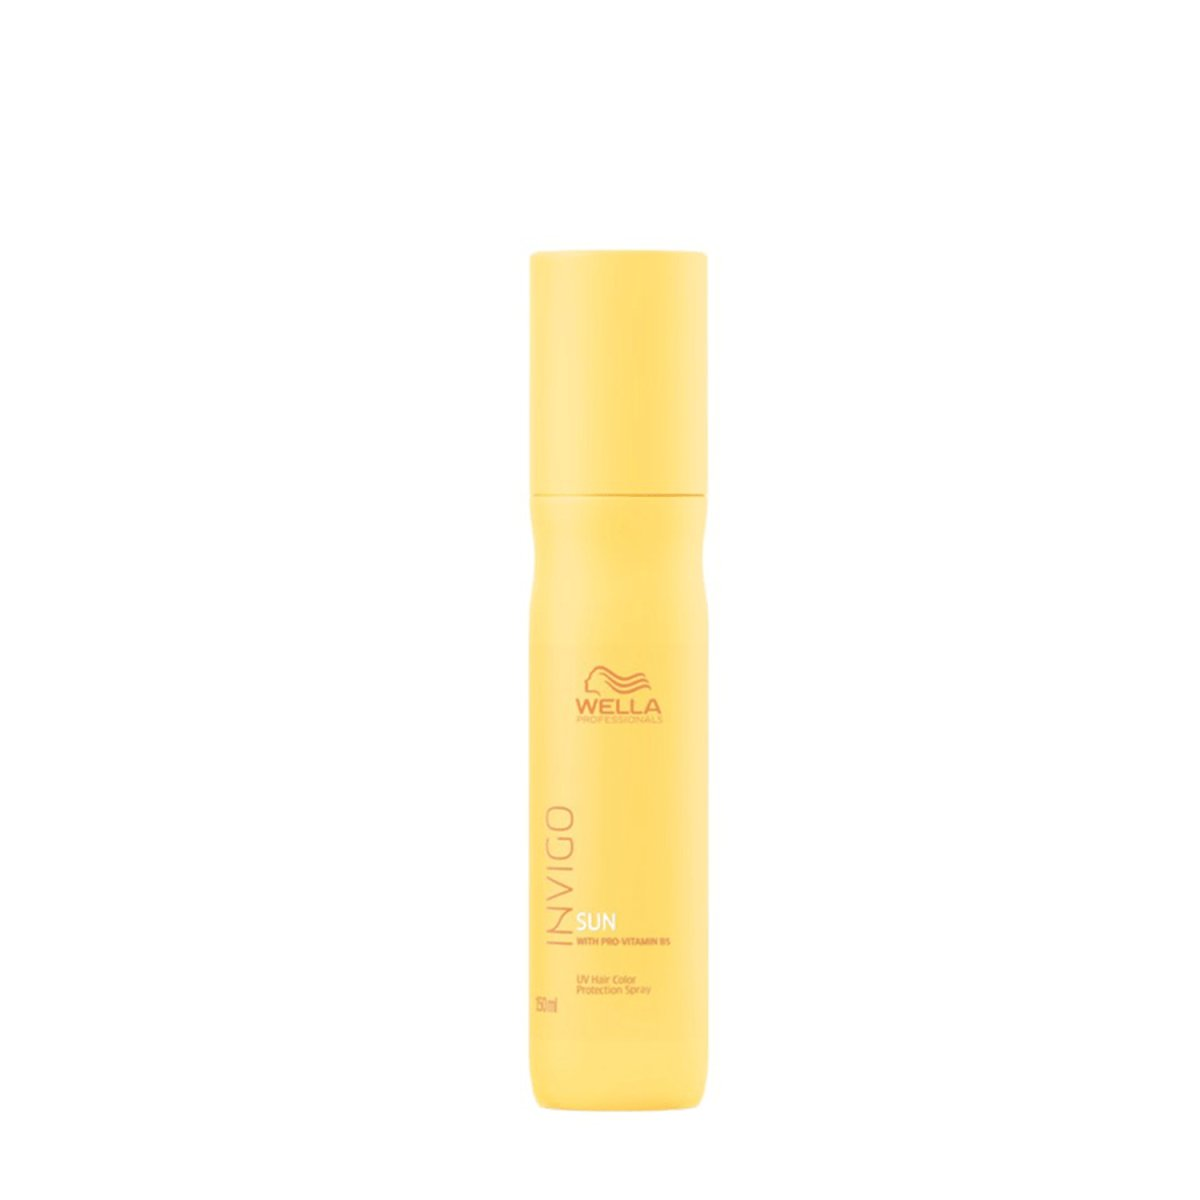 Wella Invigo Sun UV Hair Color Protection 150 ml